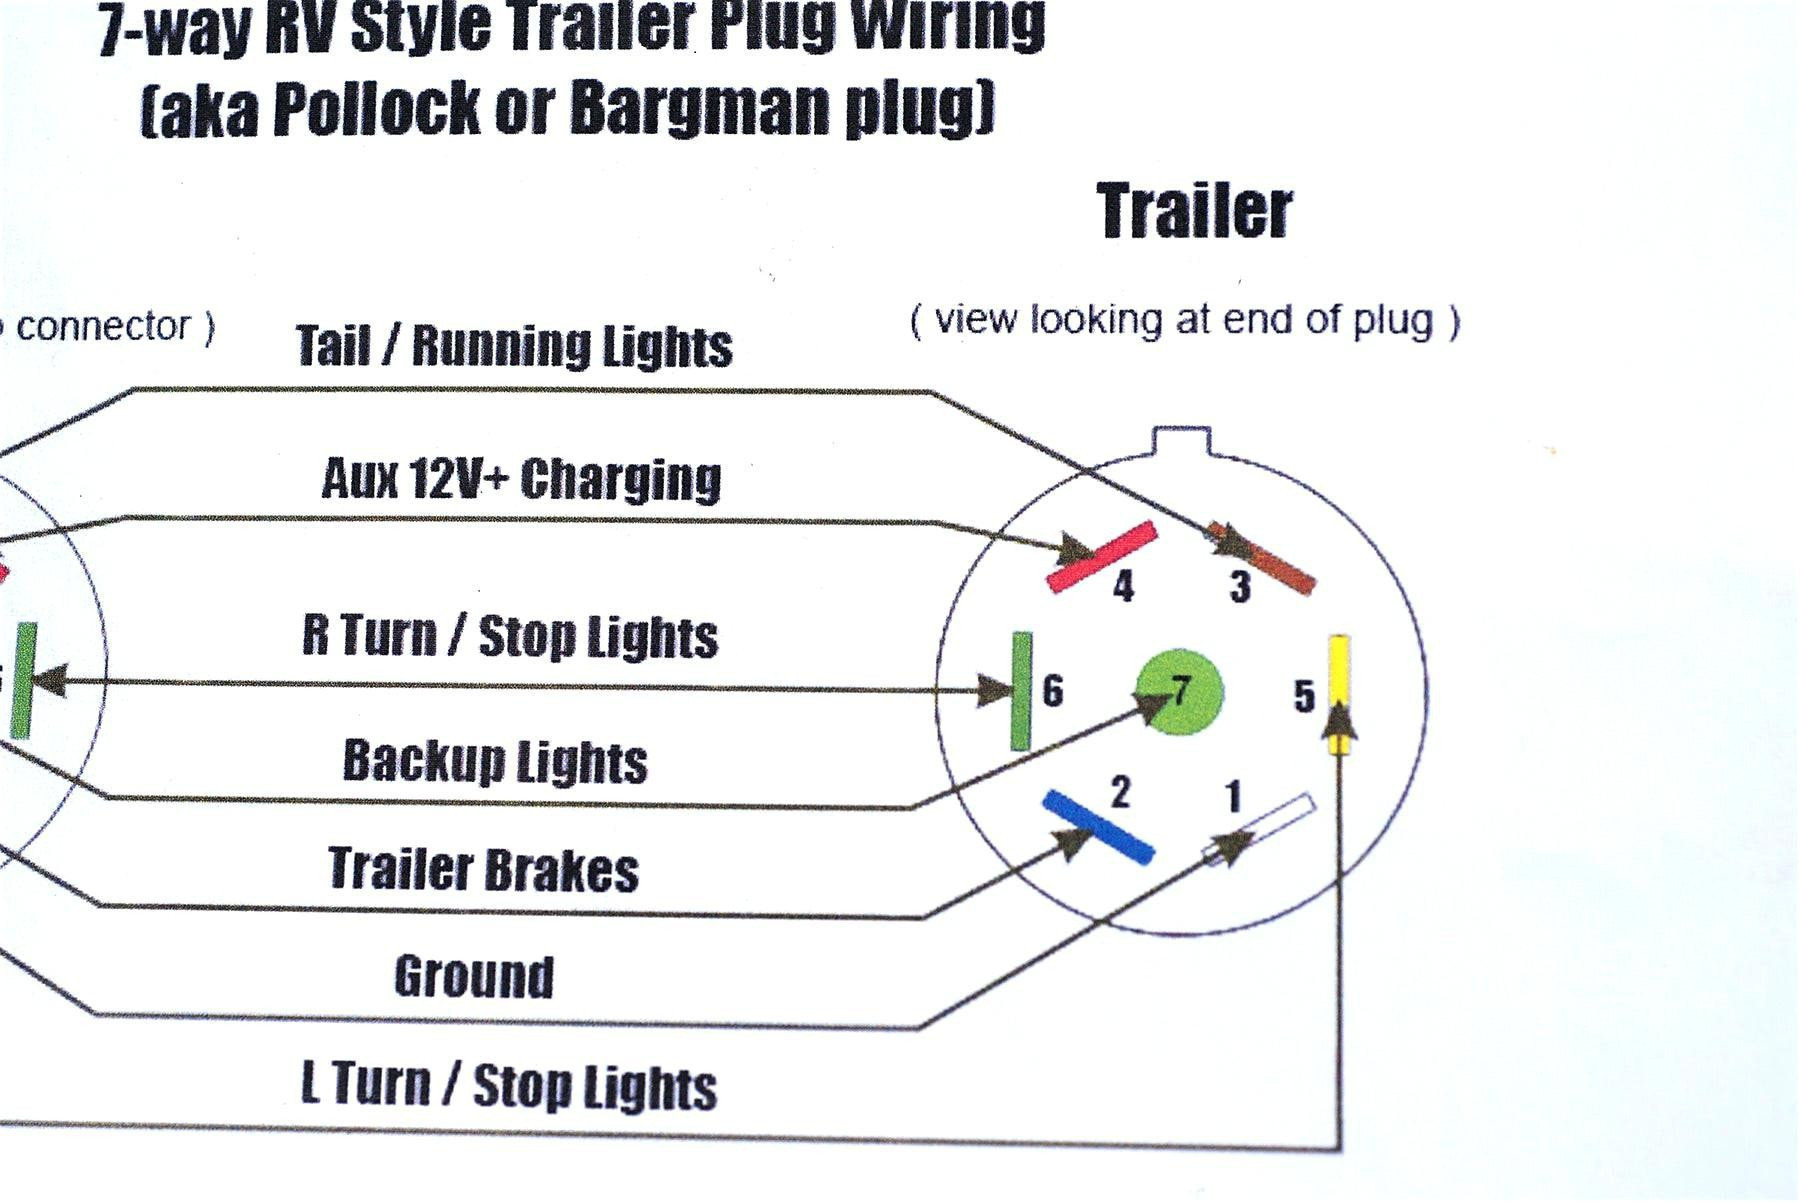 12 Pin Trailer Plug Wiring Diagram Best Of 4 Pin To 7 Pin Trailer - 4 Pin Trailer Plug Wiring Diagram